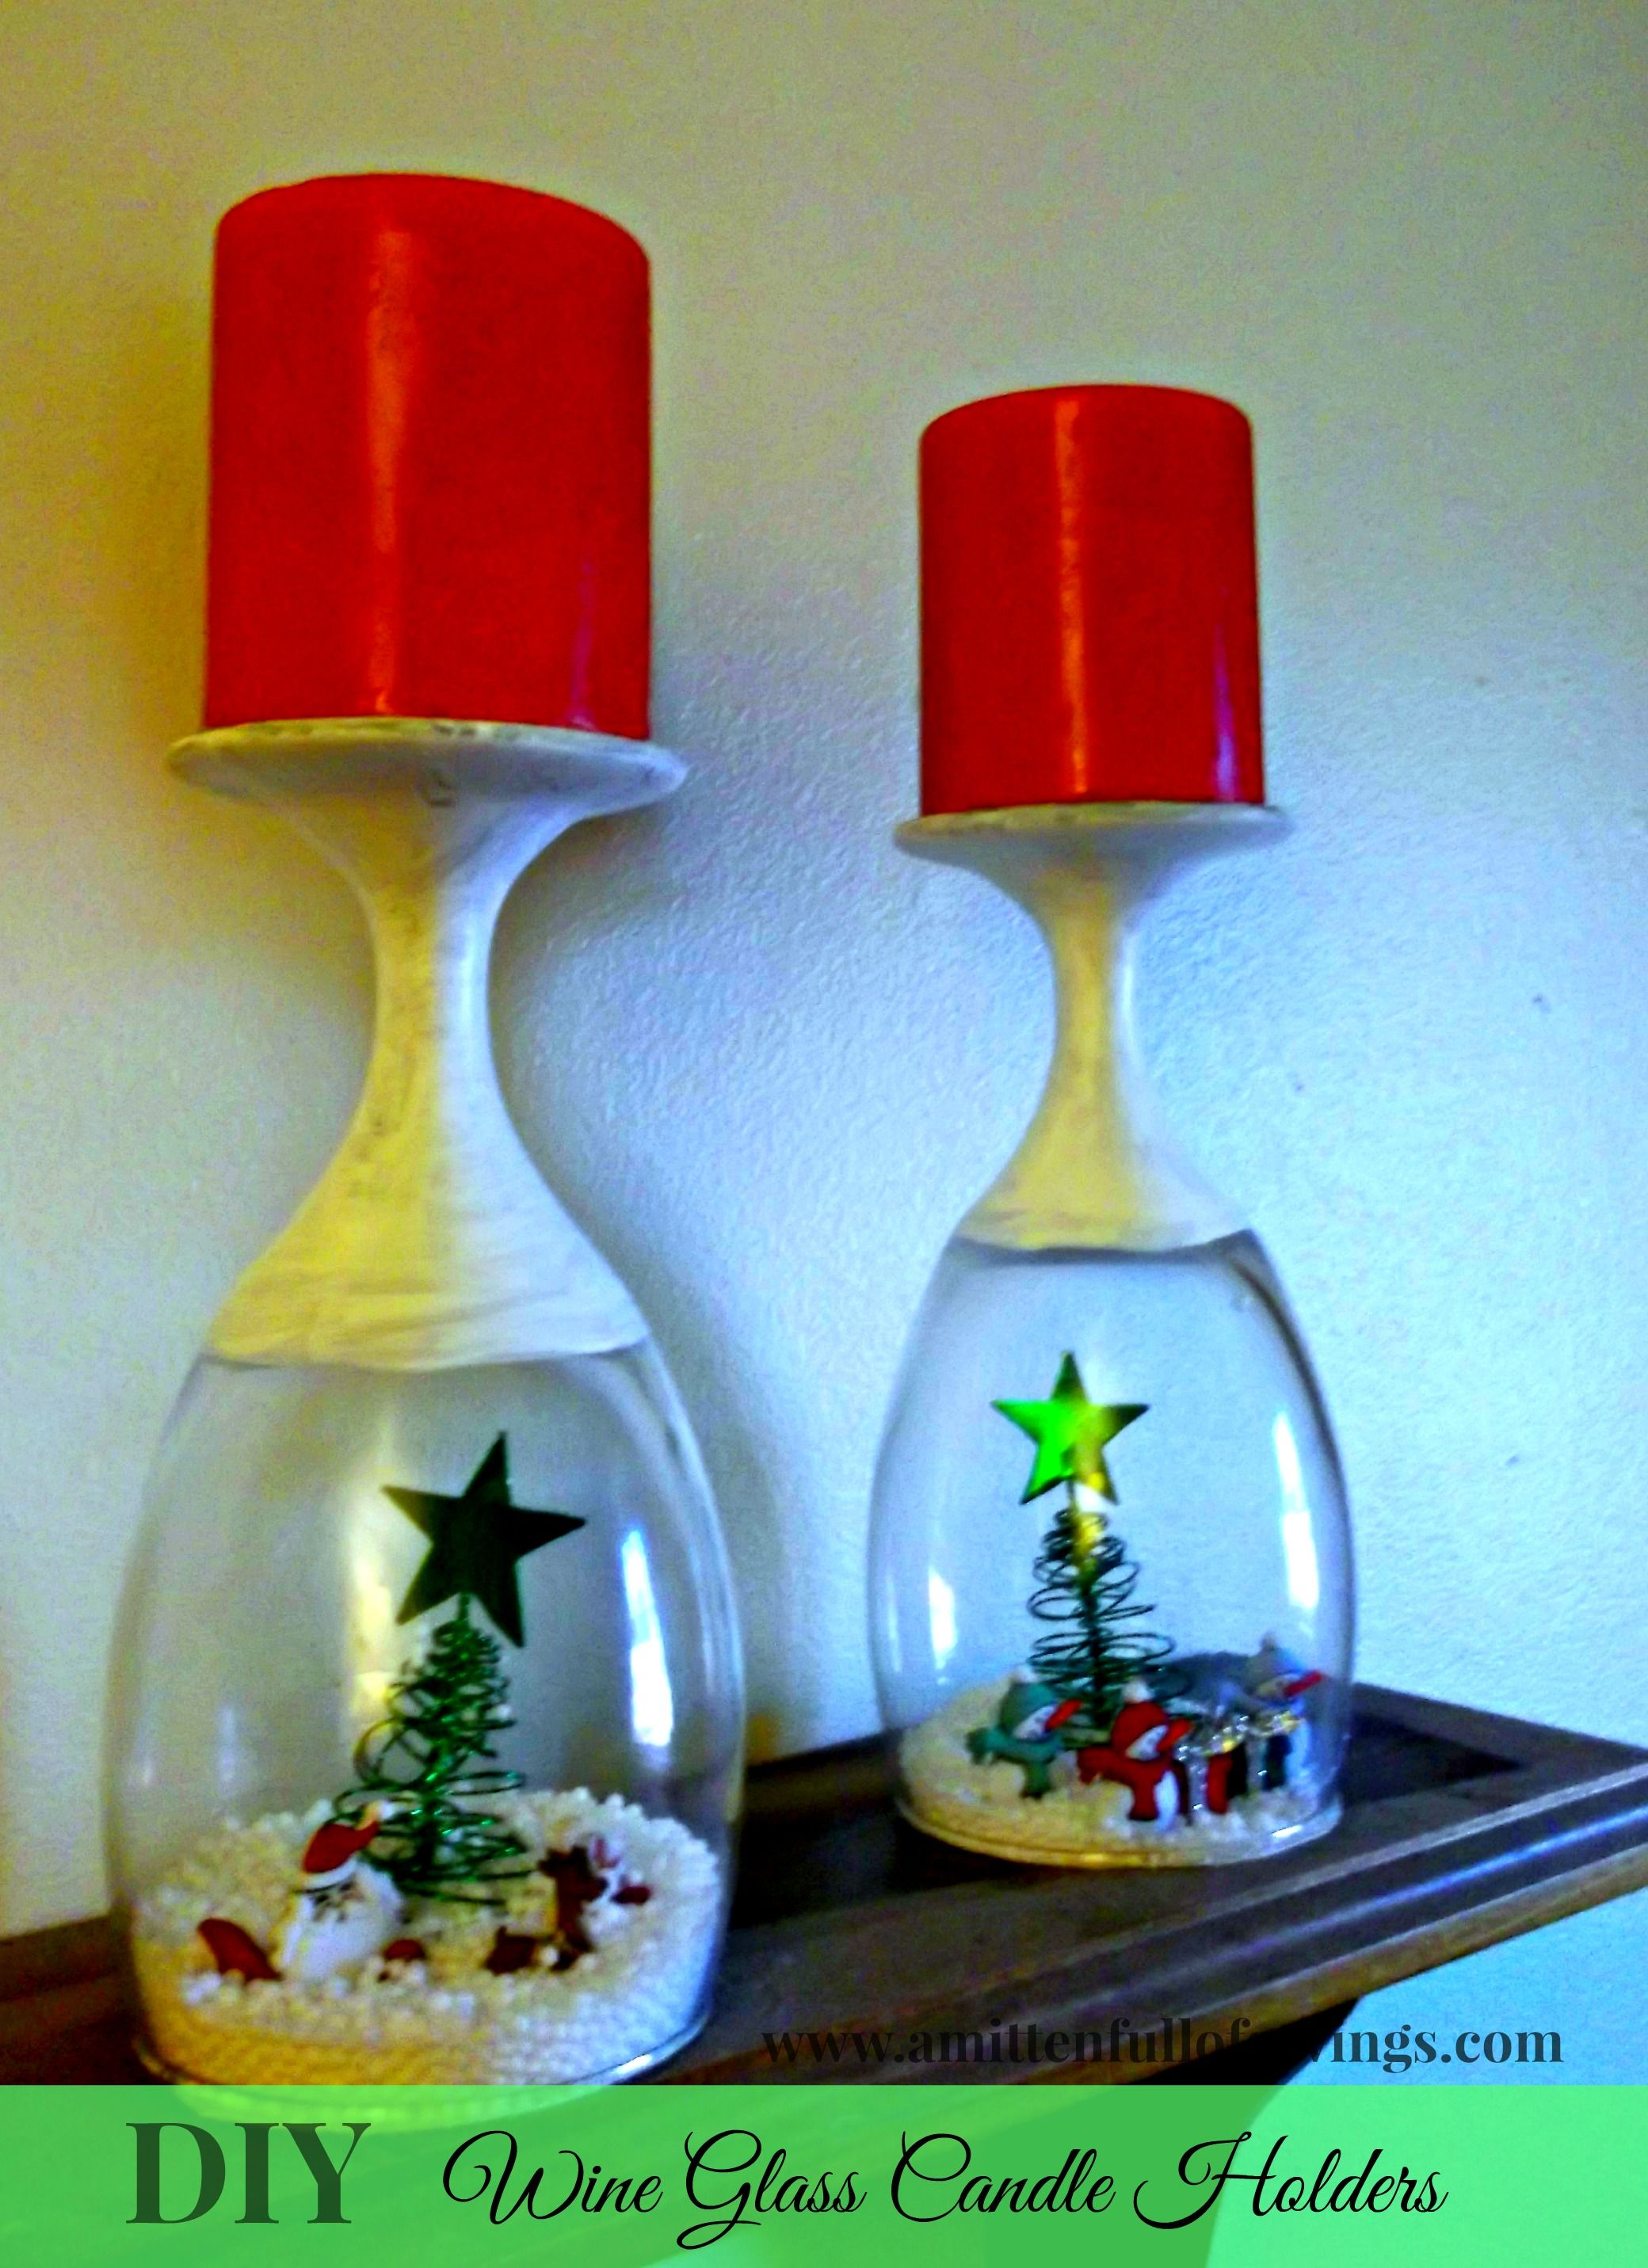 Diy Wine Glass Candle Holders Holidayspresents Pinterest Wine